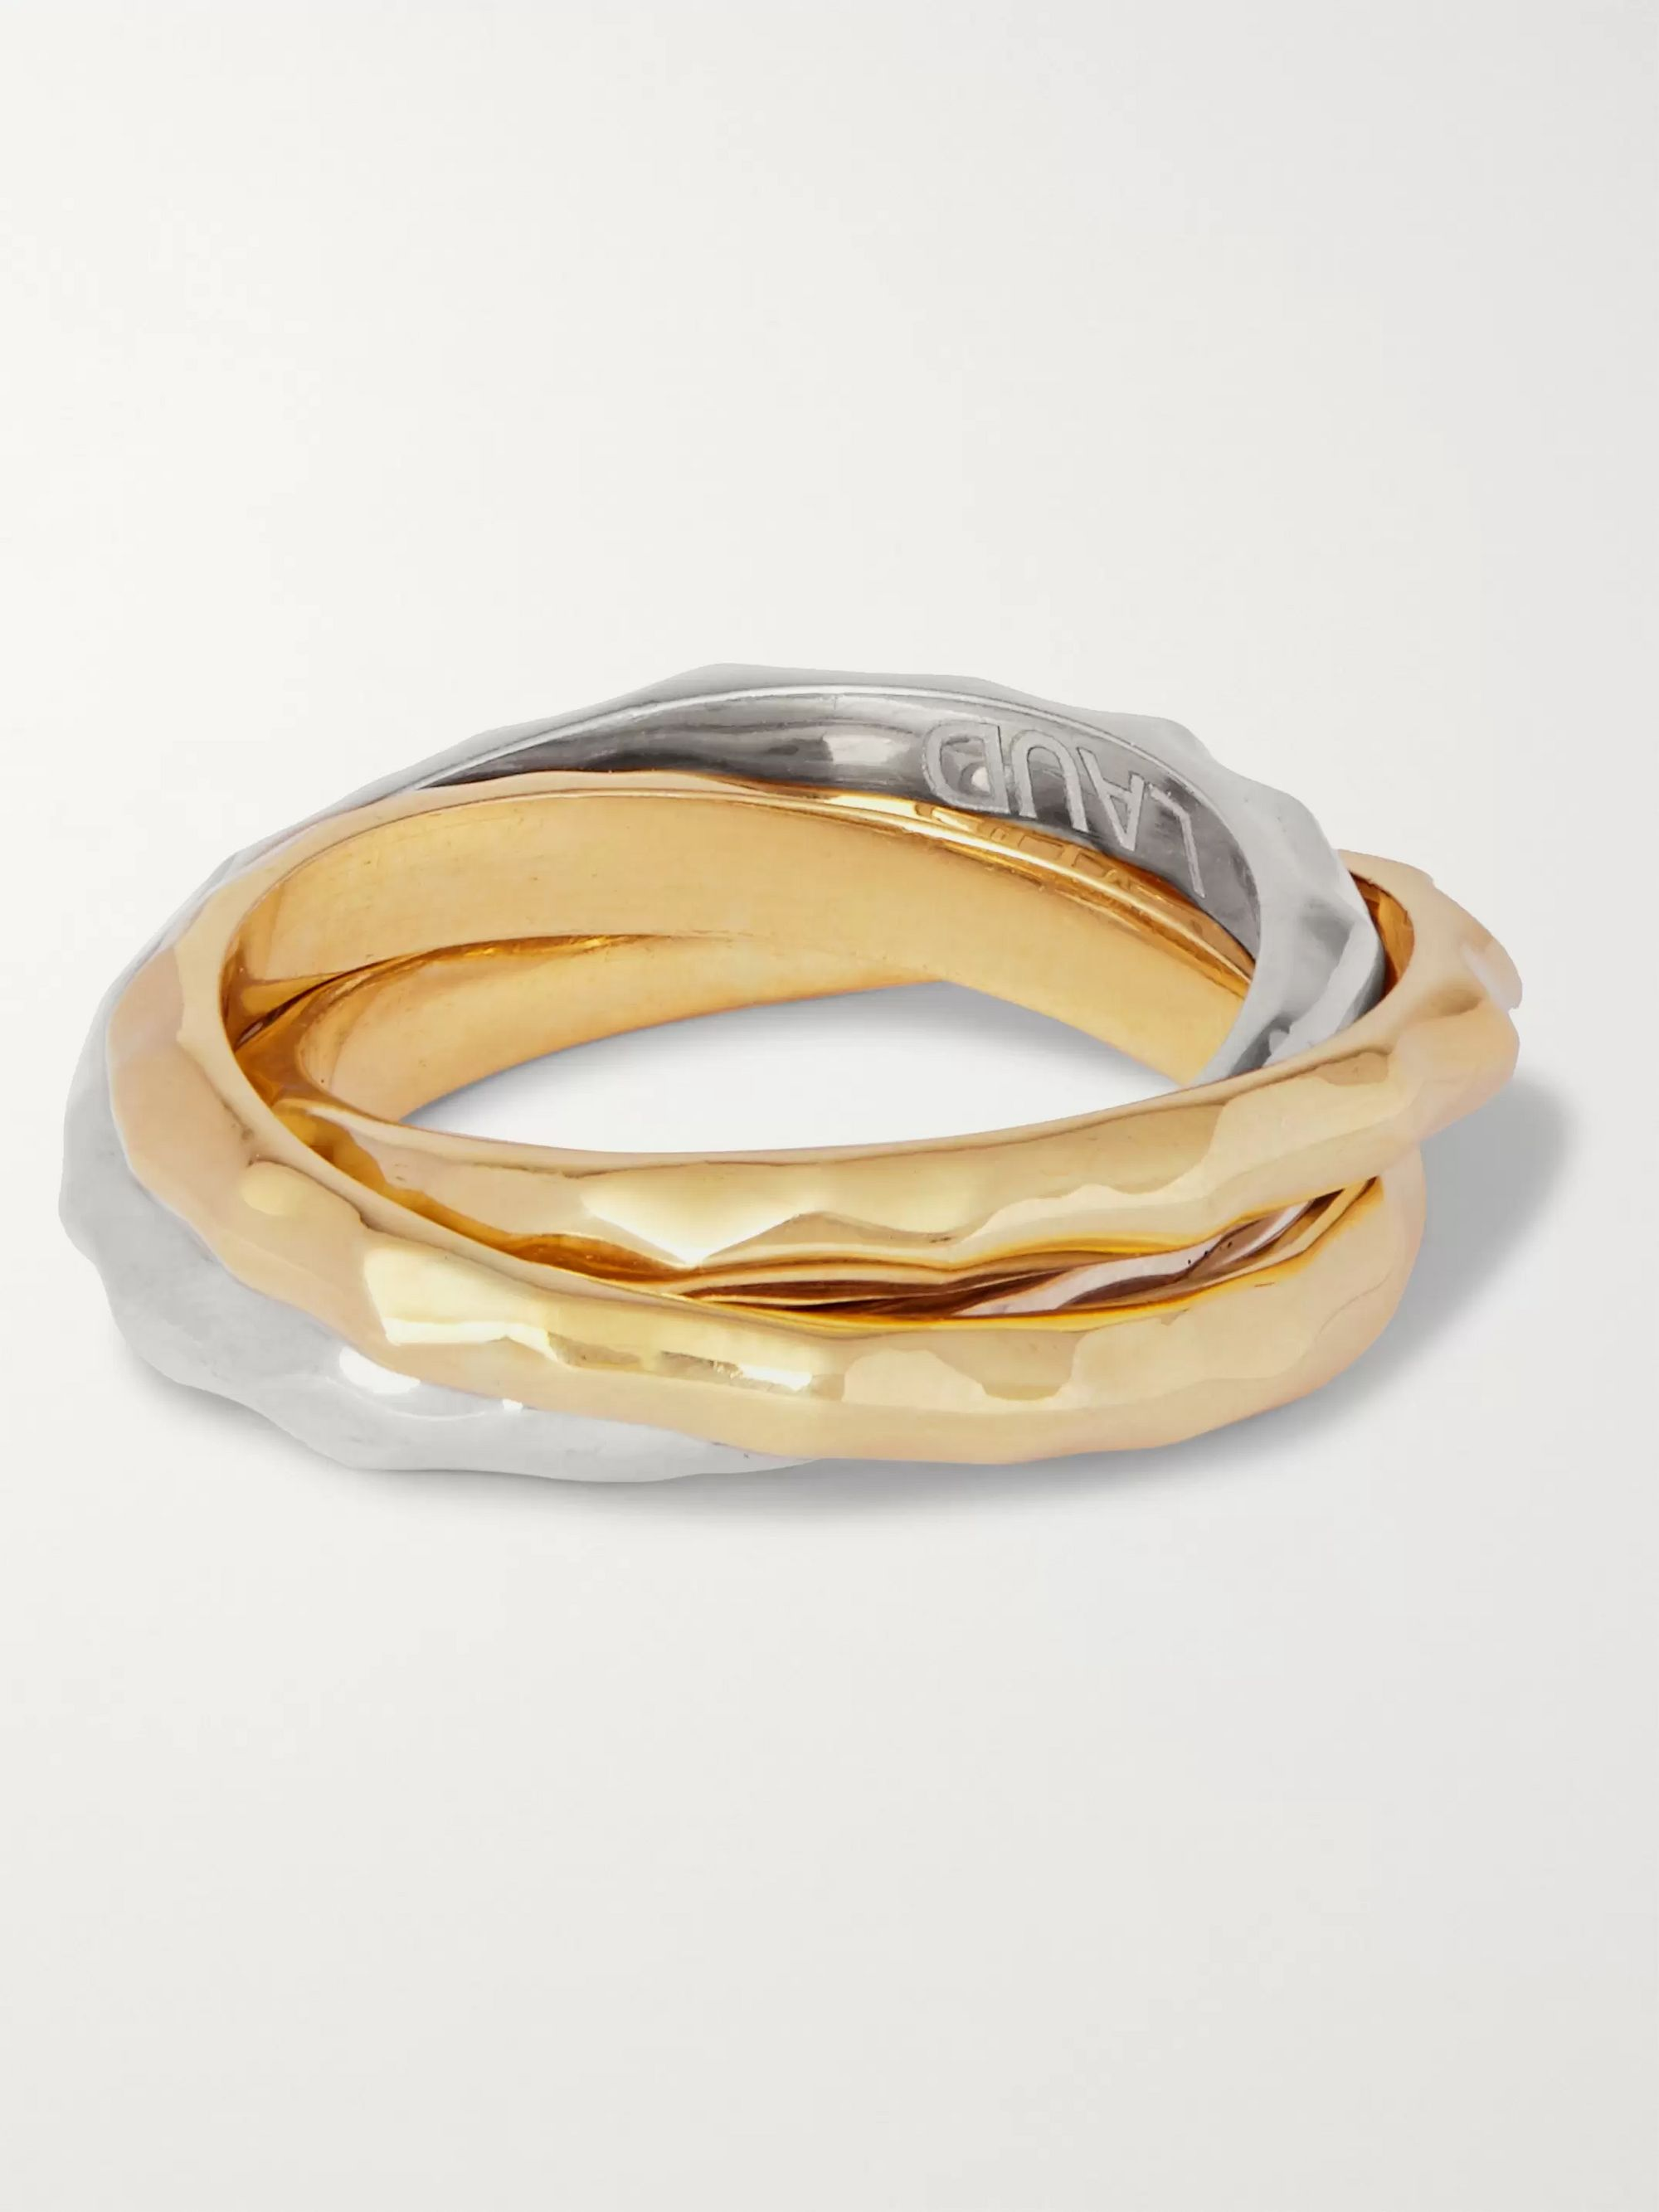 LAUD 18-Karat White and Yellow Gold Ring